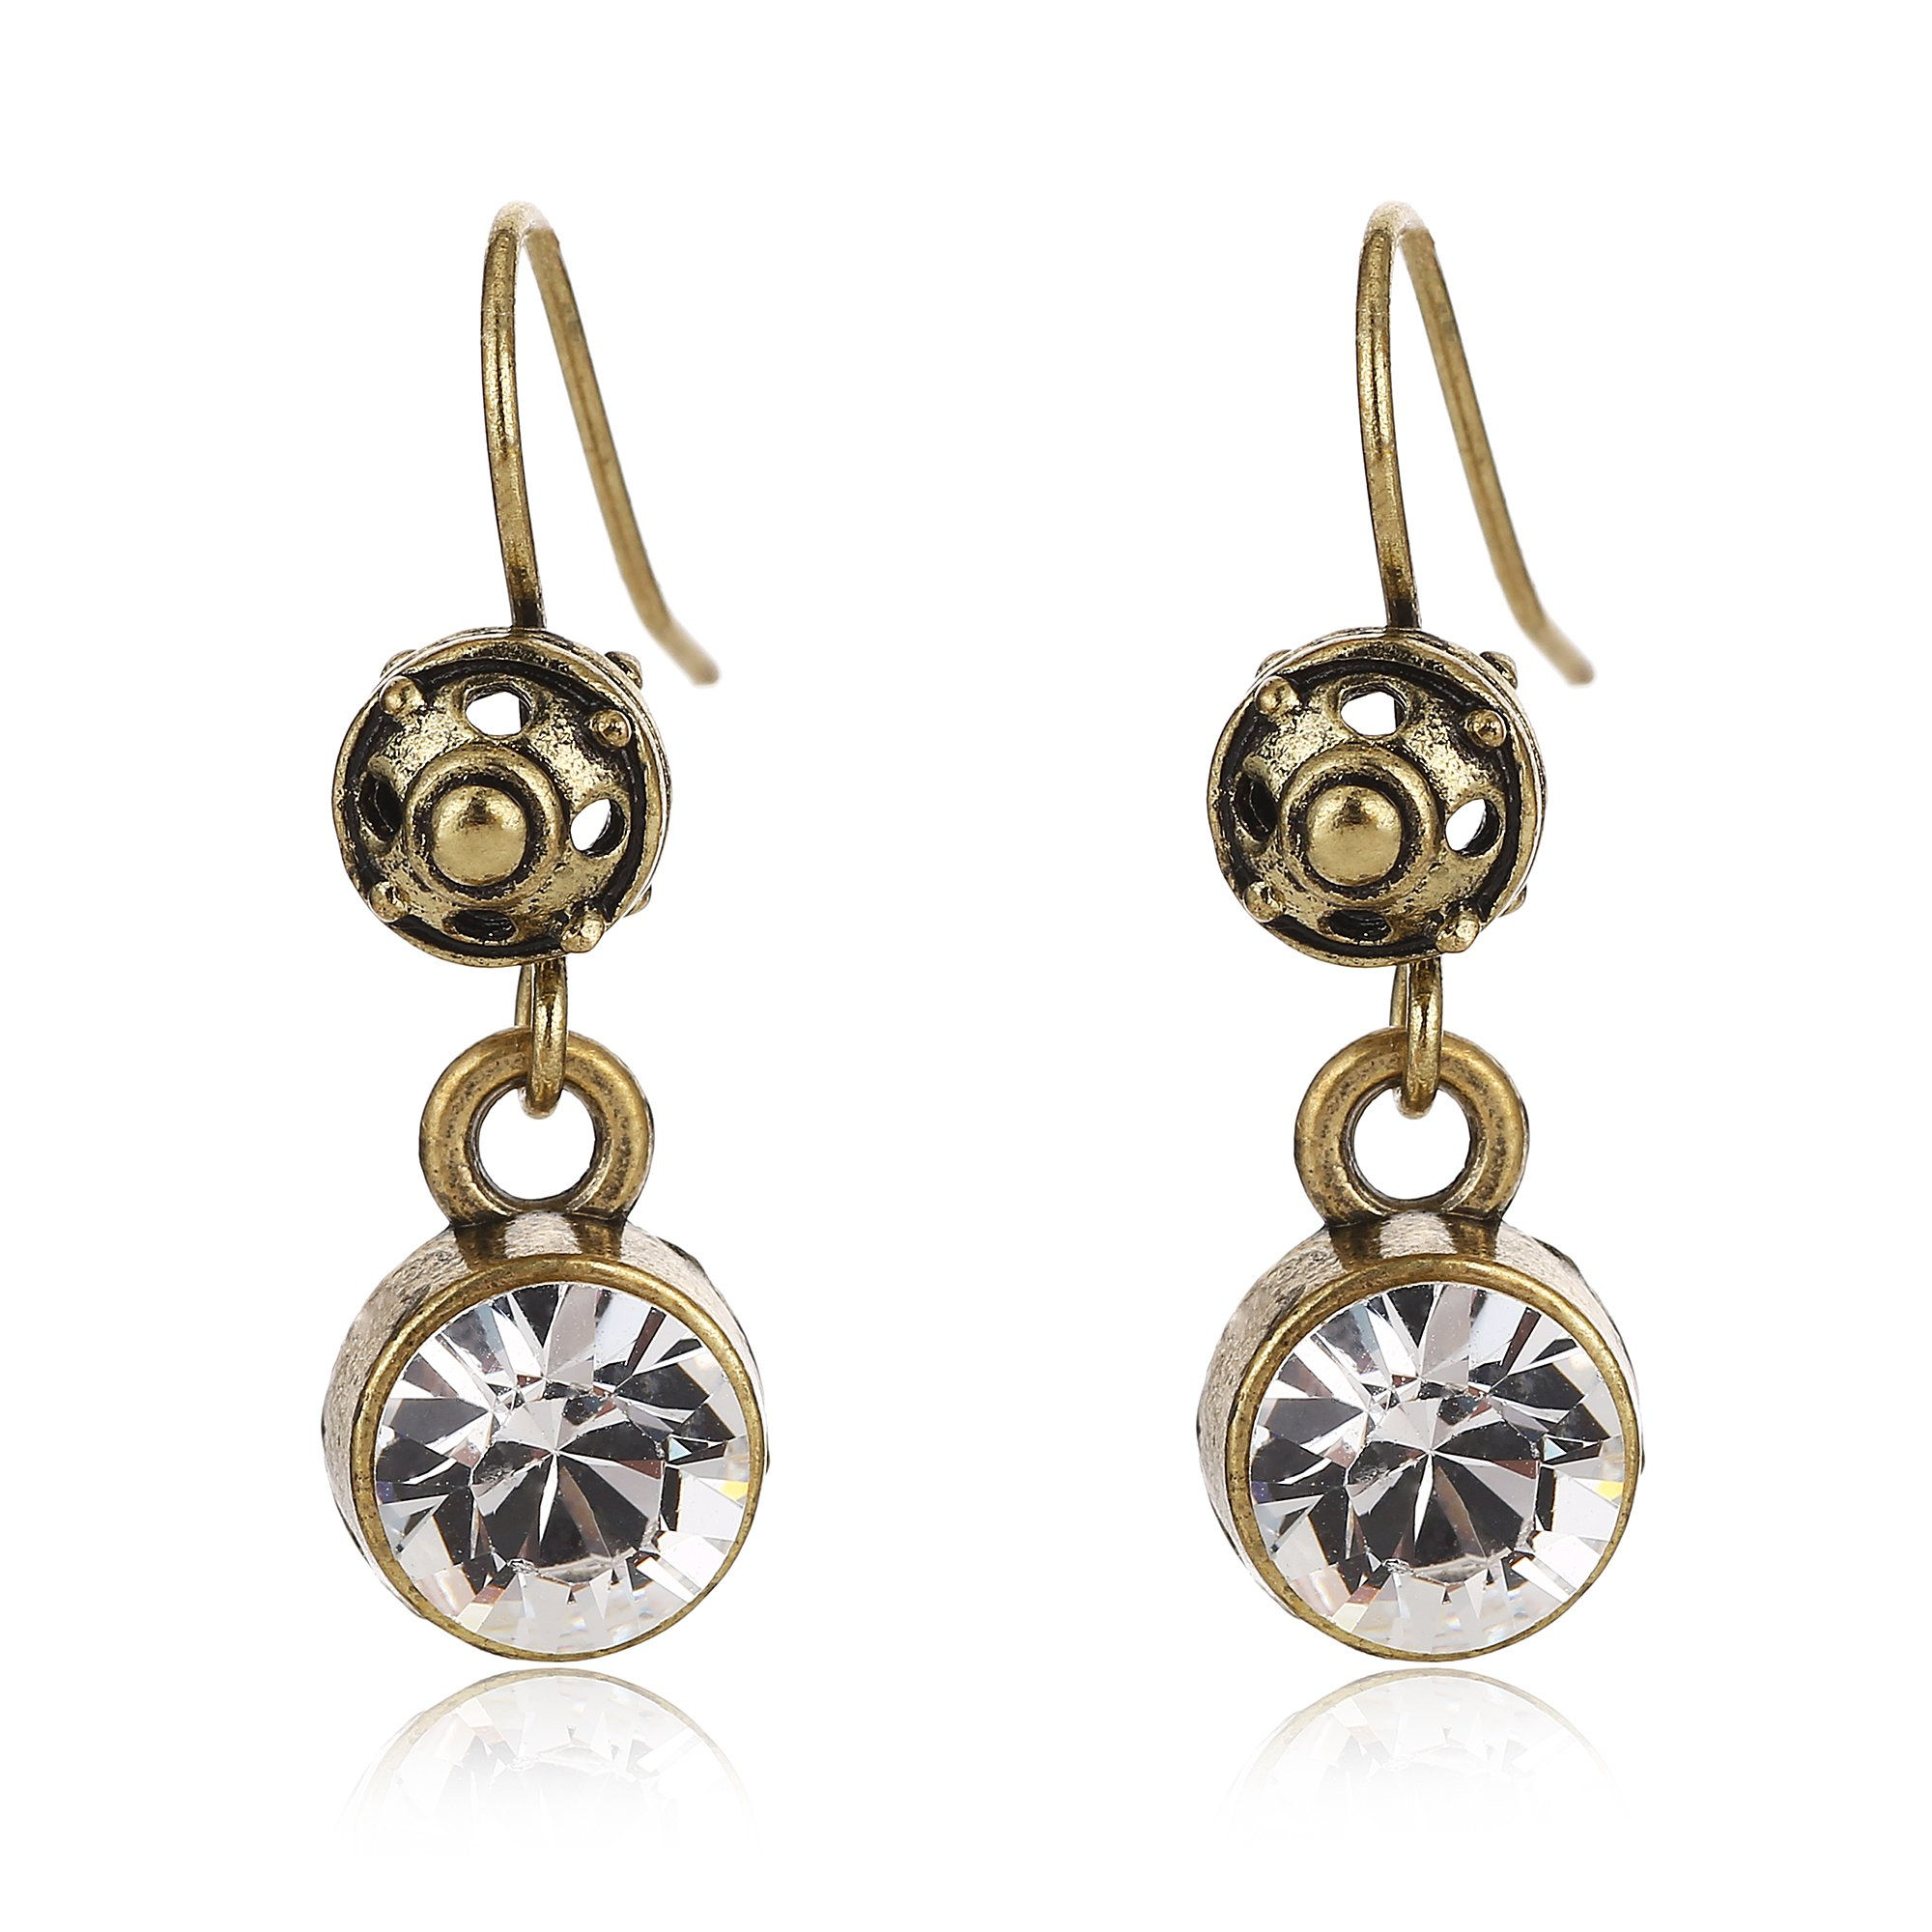 Tom+Alice Hand-made Antique Style 8mm Austria Imported Zircon Dangle Earrings for Women Eco-Copper Ear Hook